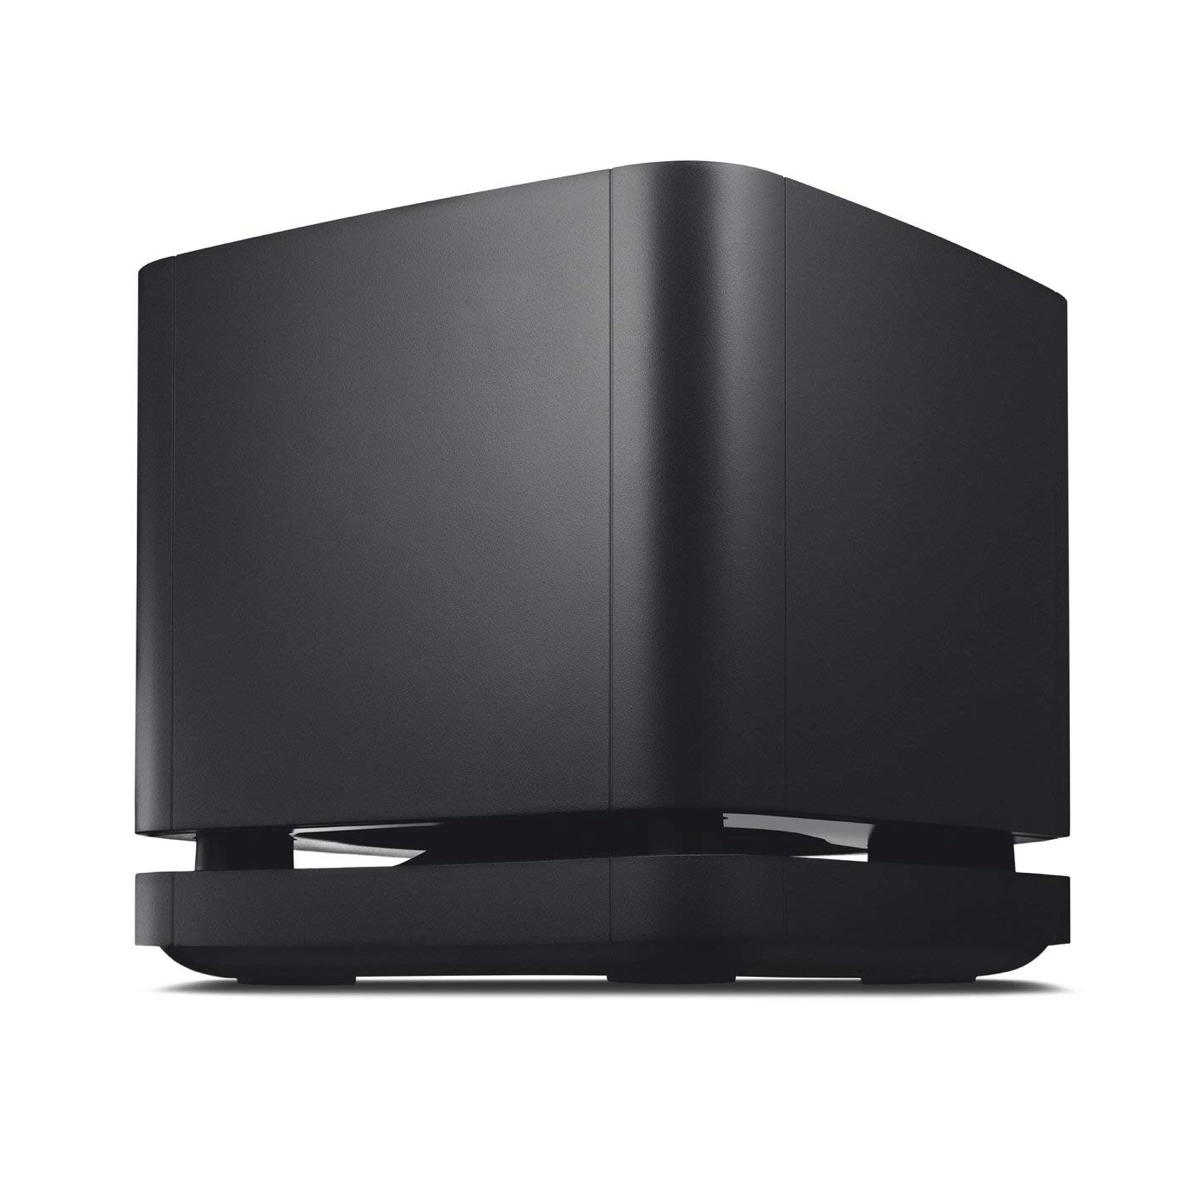 Bose Bass Module 500 - Black, Bose, Soundbar - AVStore.in